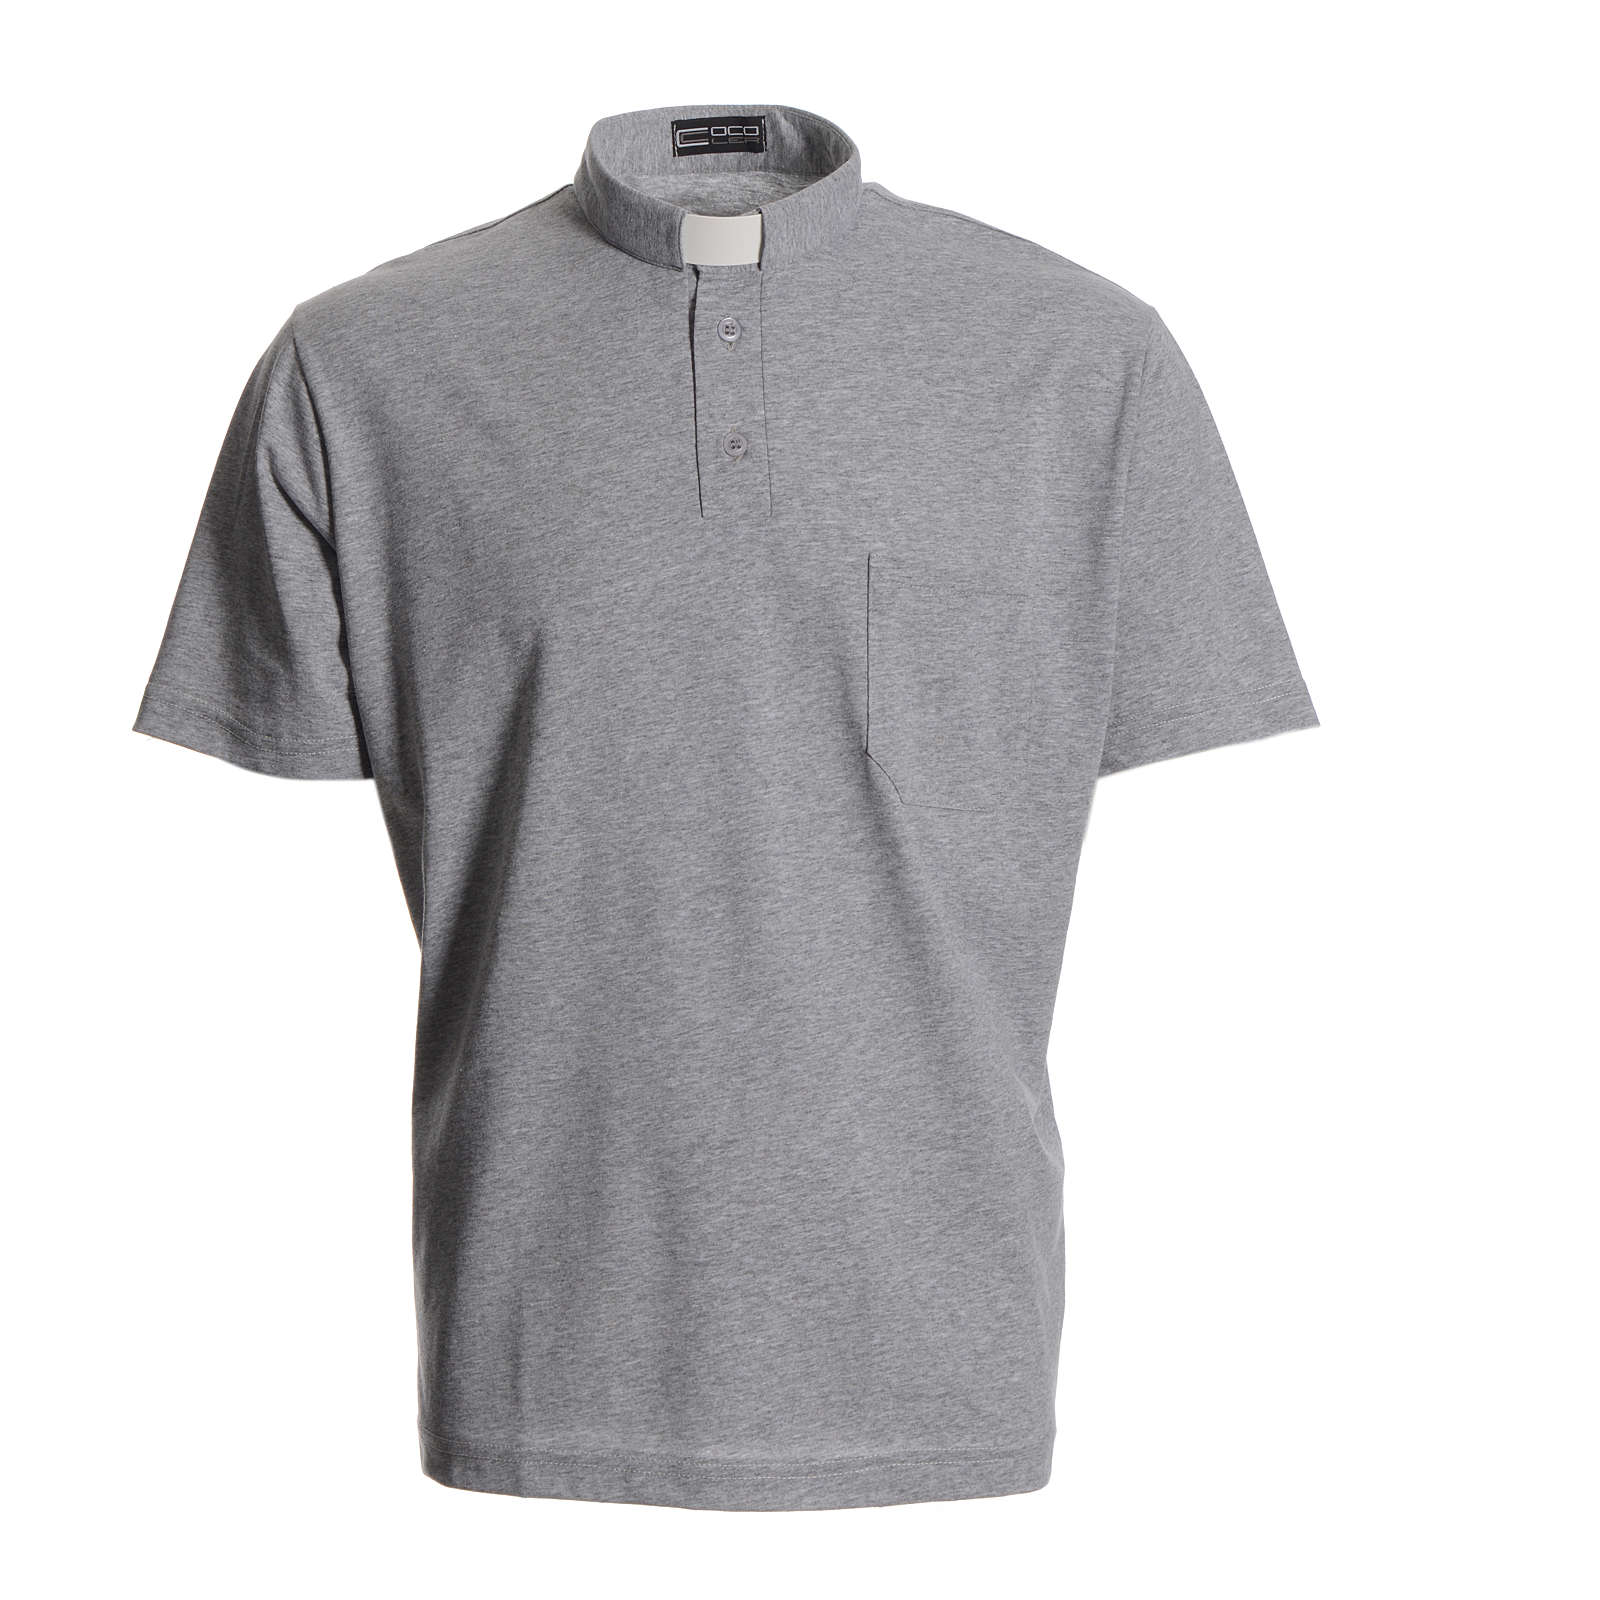 Priest grey polo shirt in cotton 4